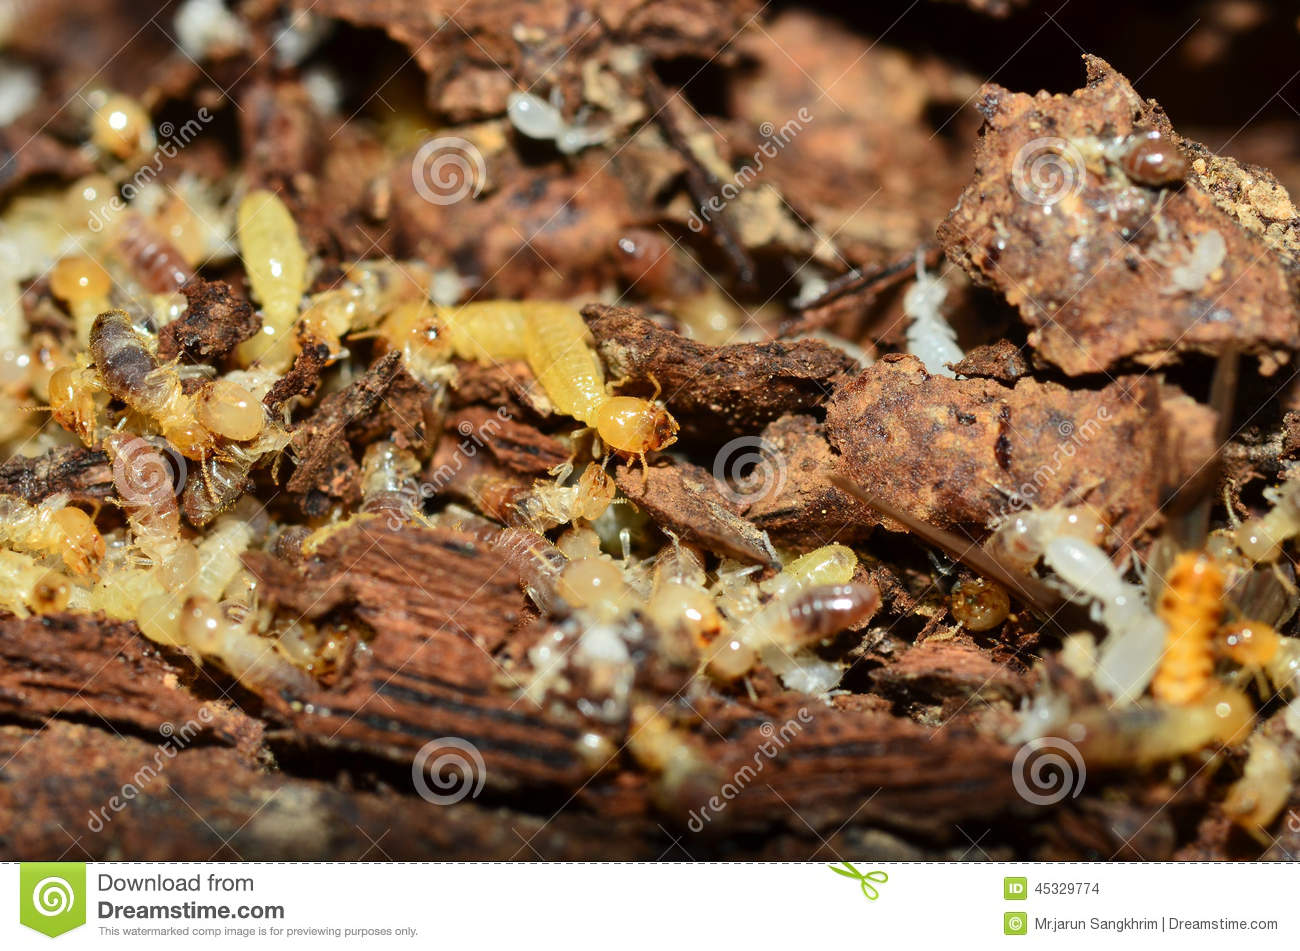 How often should you get your house inspected for termites ... |Termites Eating House